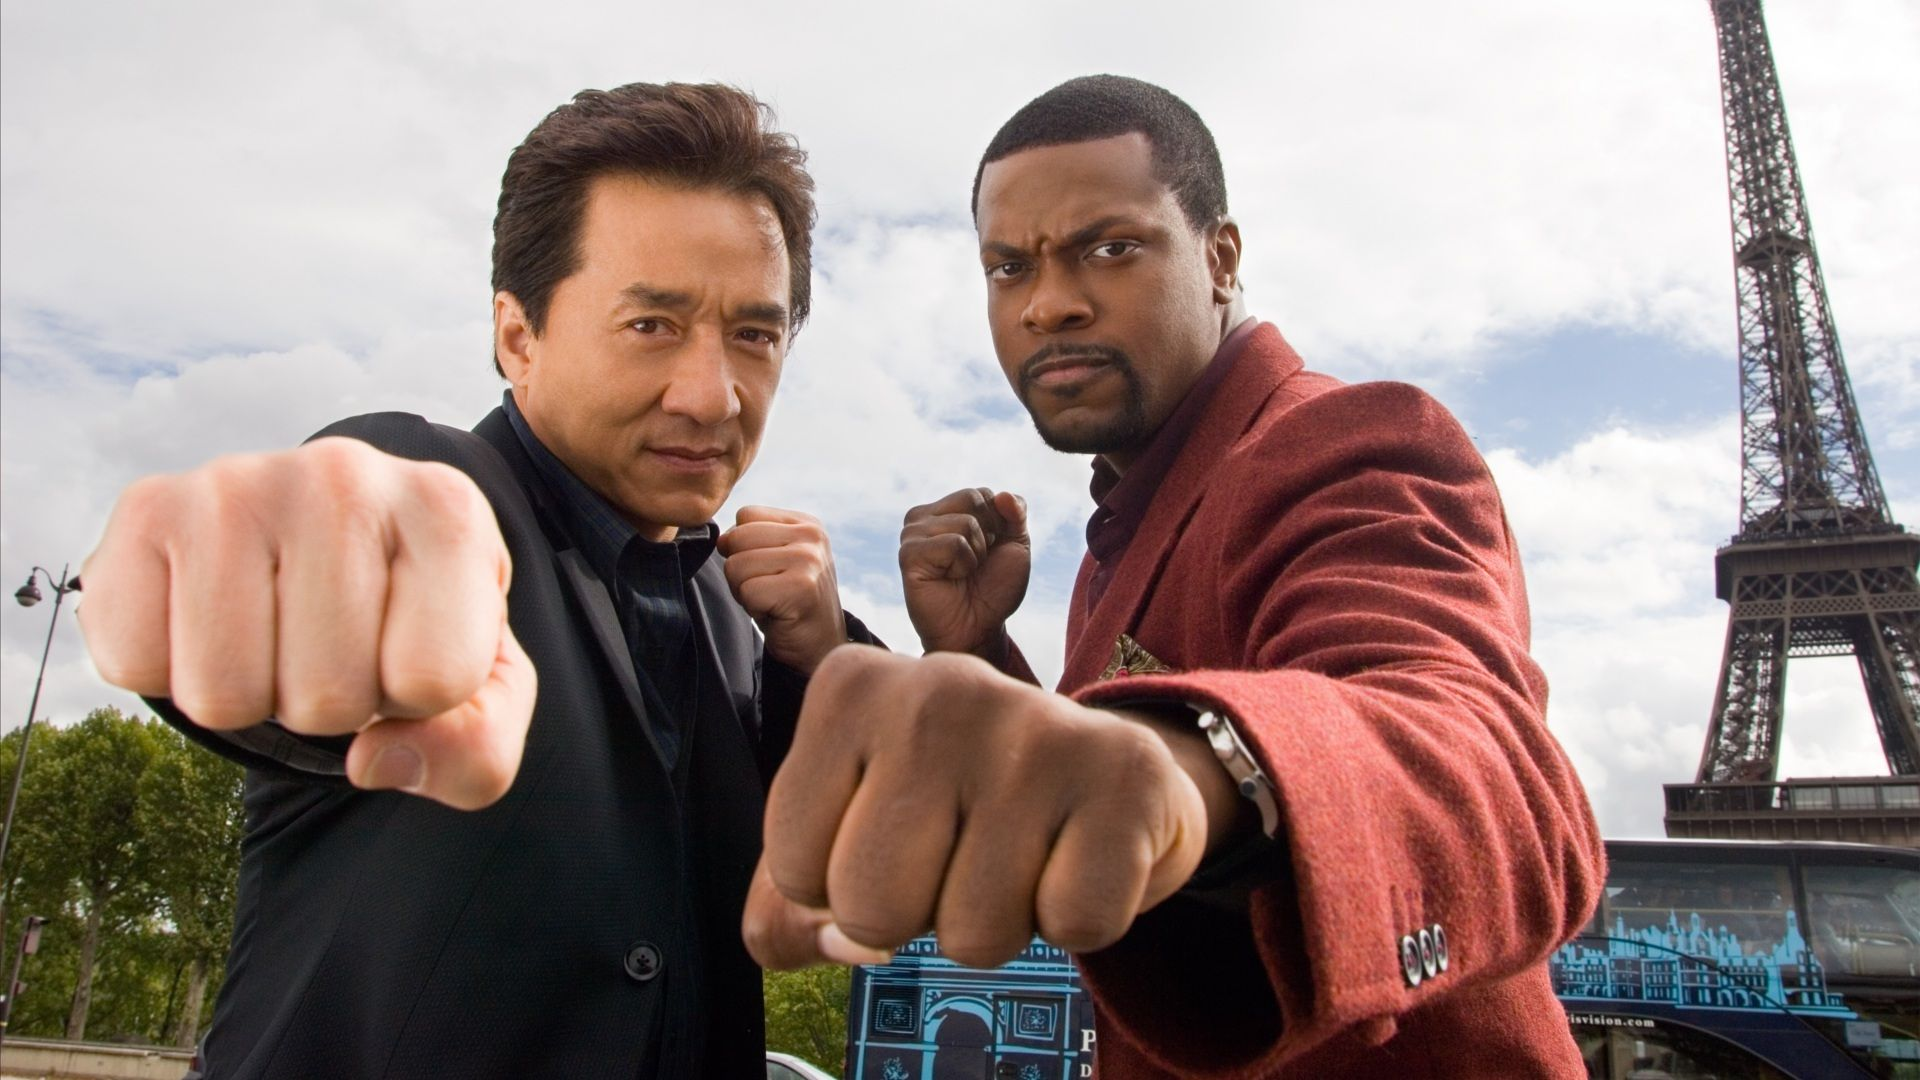 WATCH: SNEAK PEEK OF THE NEW 'RUSH HOUR' TV SERIES COMING 2016!